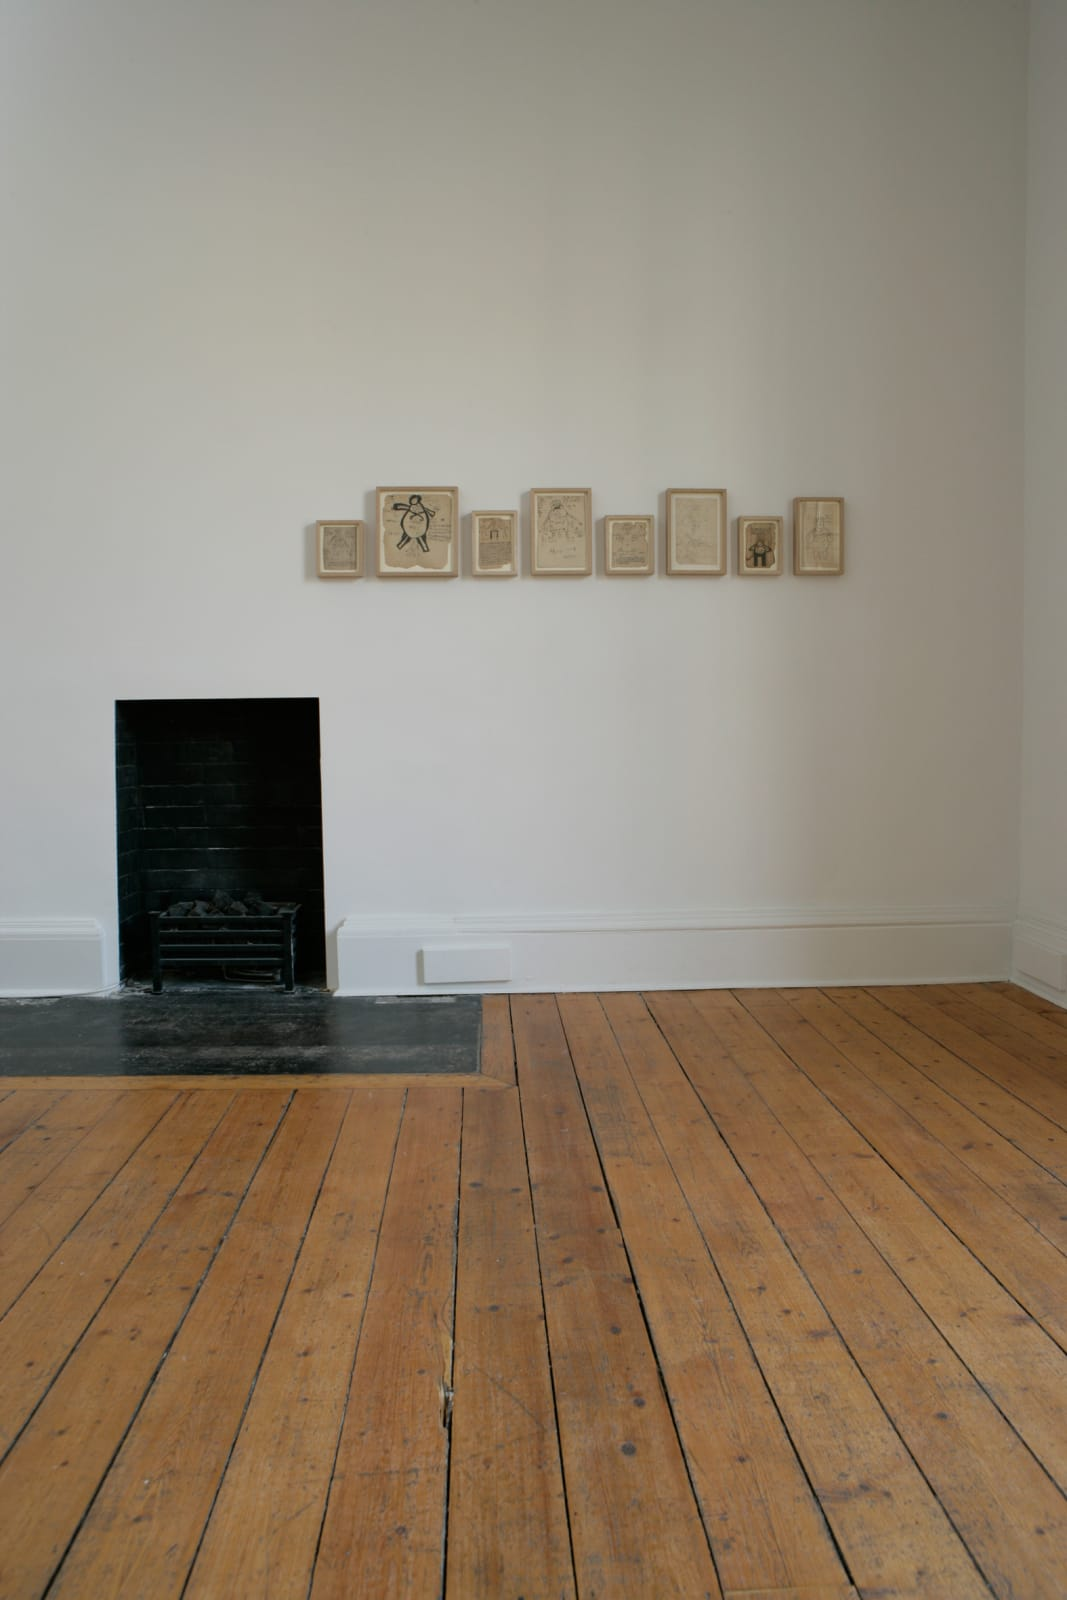 Installation view of the exhibition Alexander Gorlizki & Indian Spells - Drawings from the 19th Century